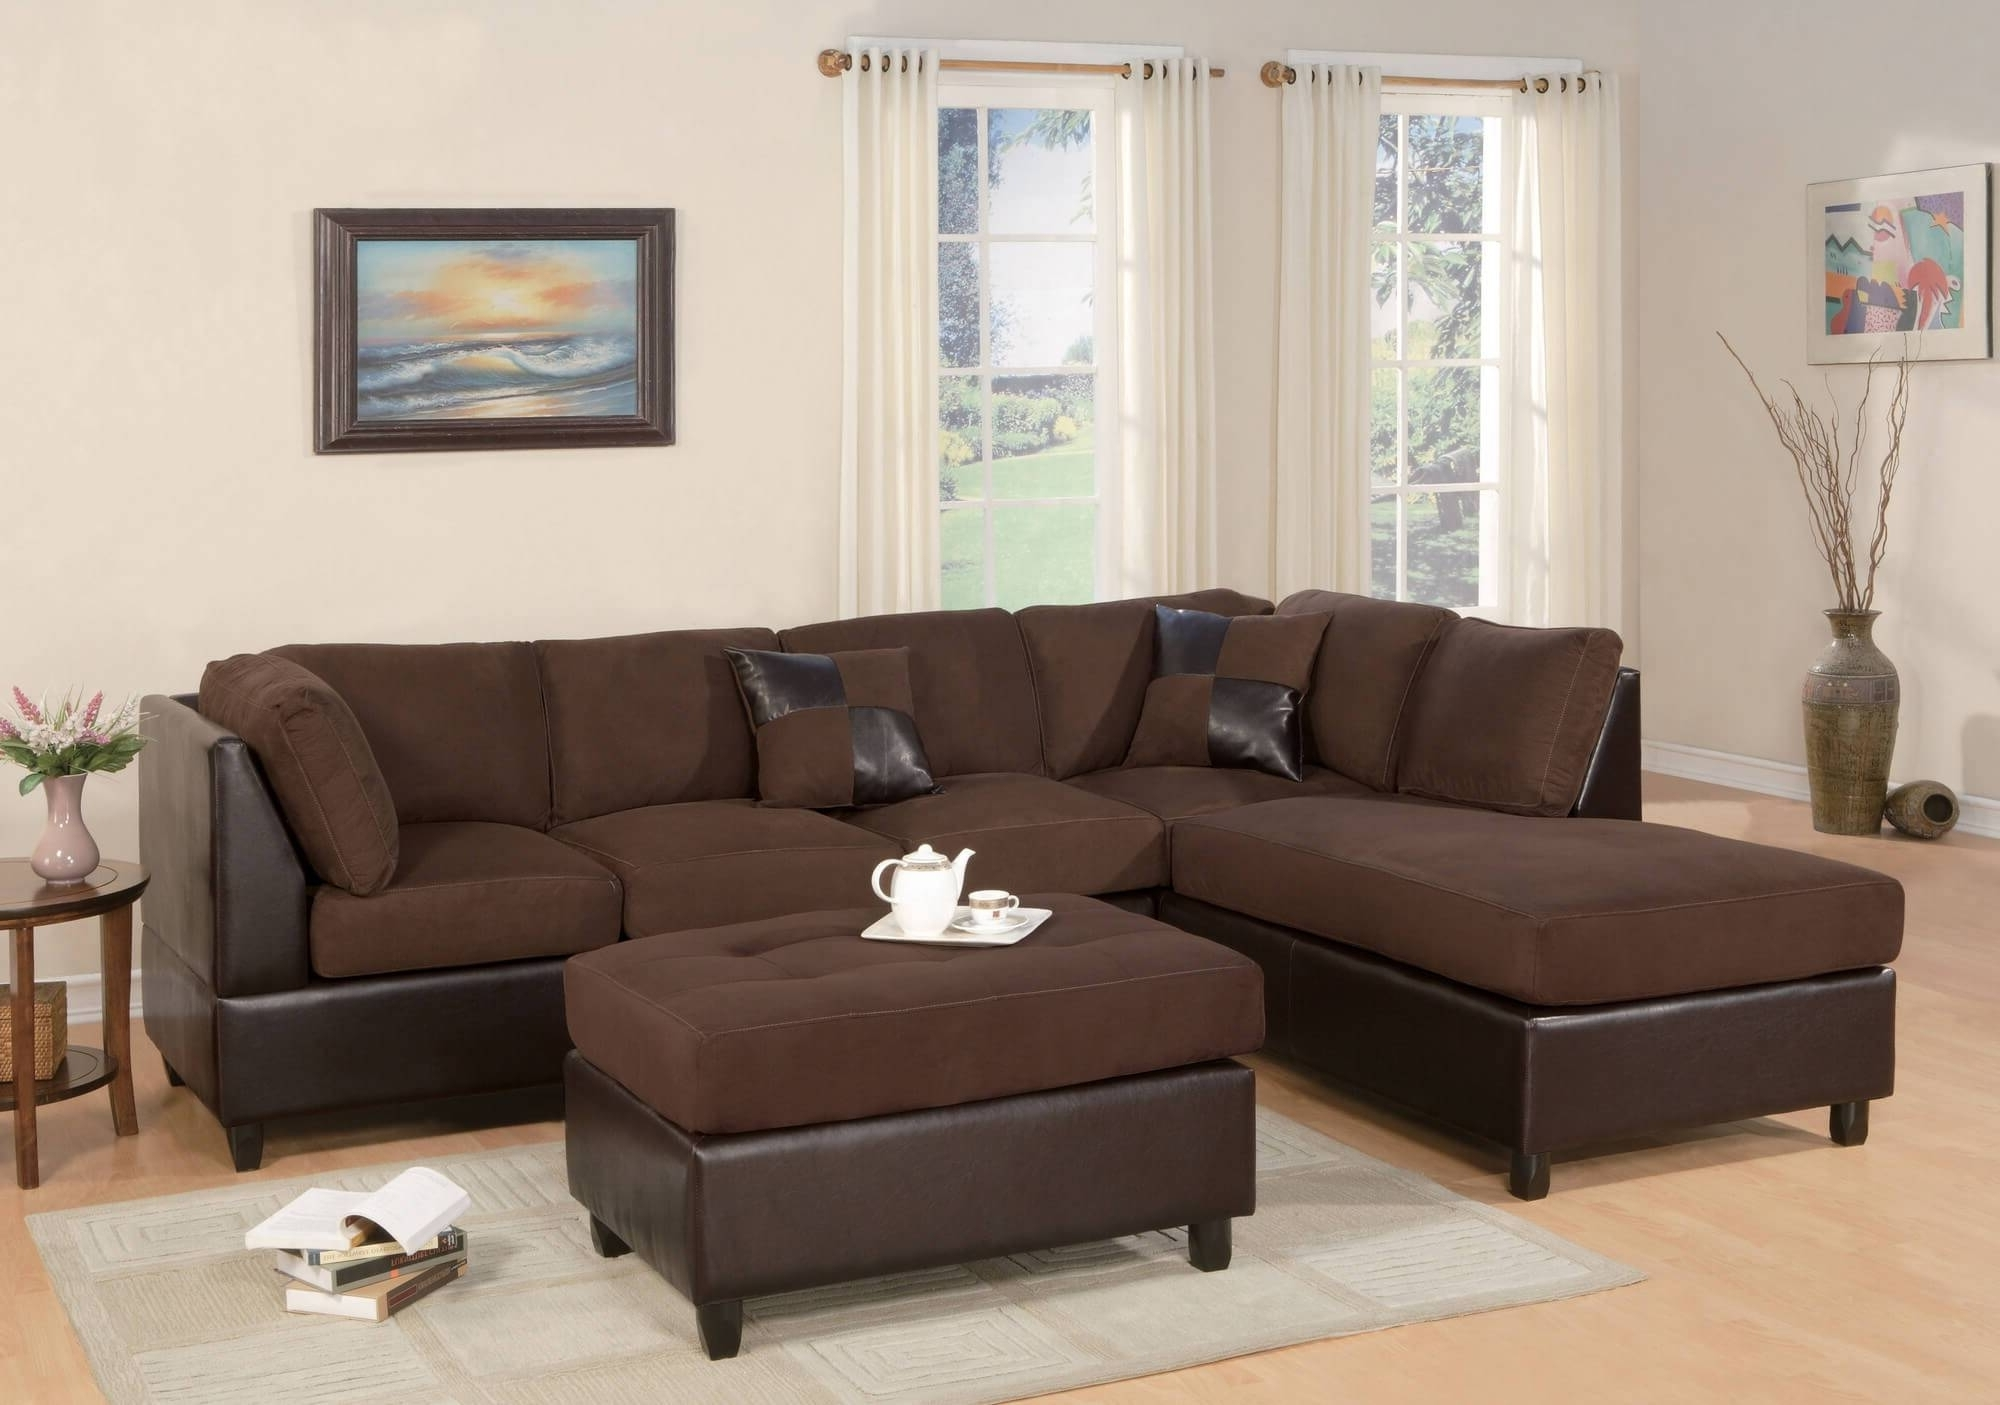 Furniture : Best Sofas Under 1000 Best Sofas Under 1000' Best Inside Well Known Sectional Sofas Under  (View 7 of 20)